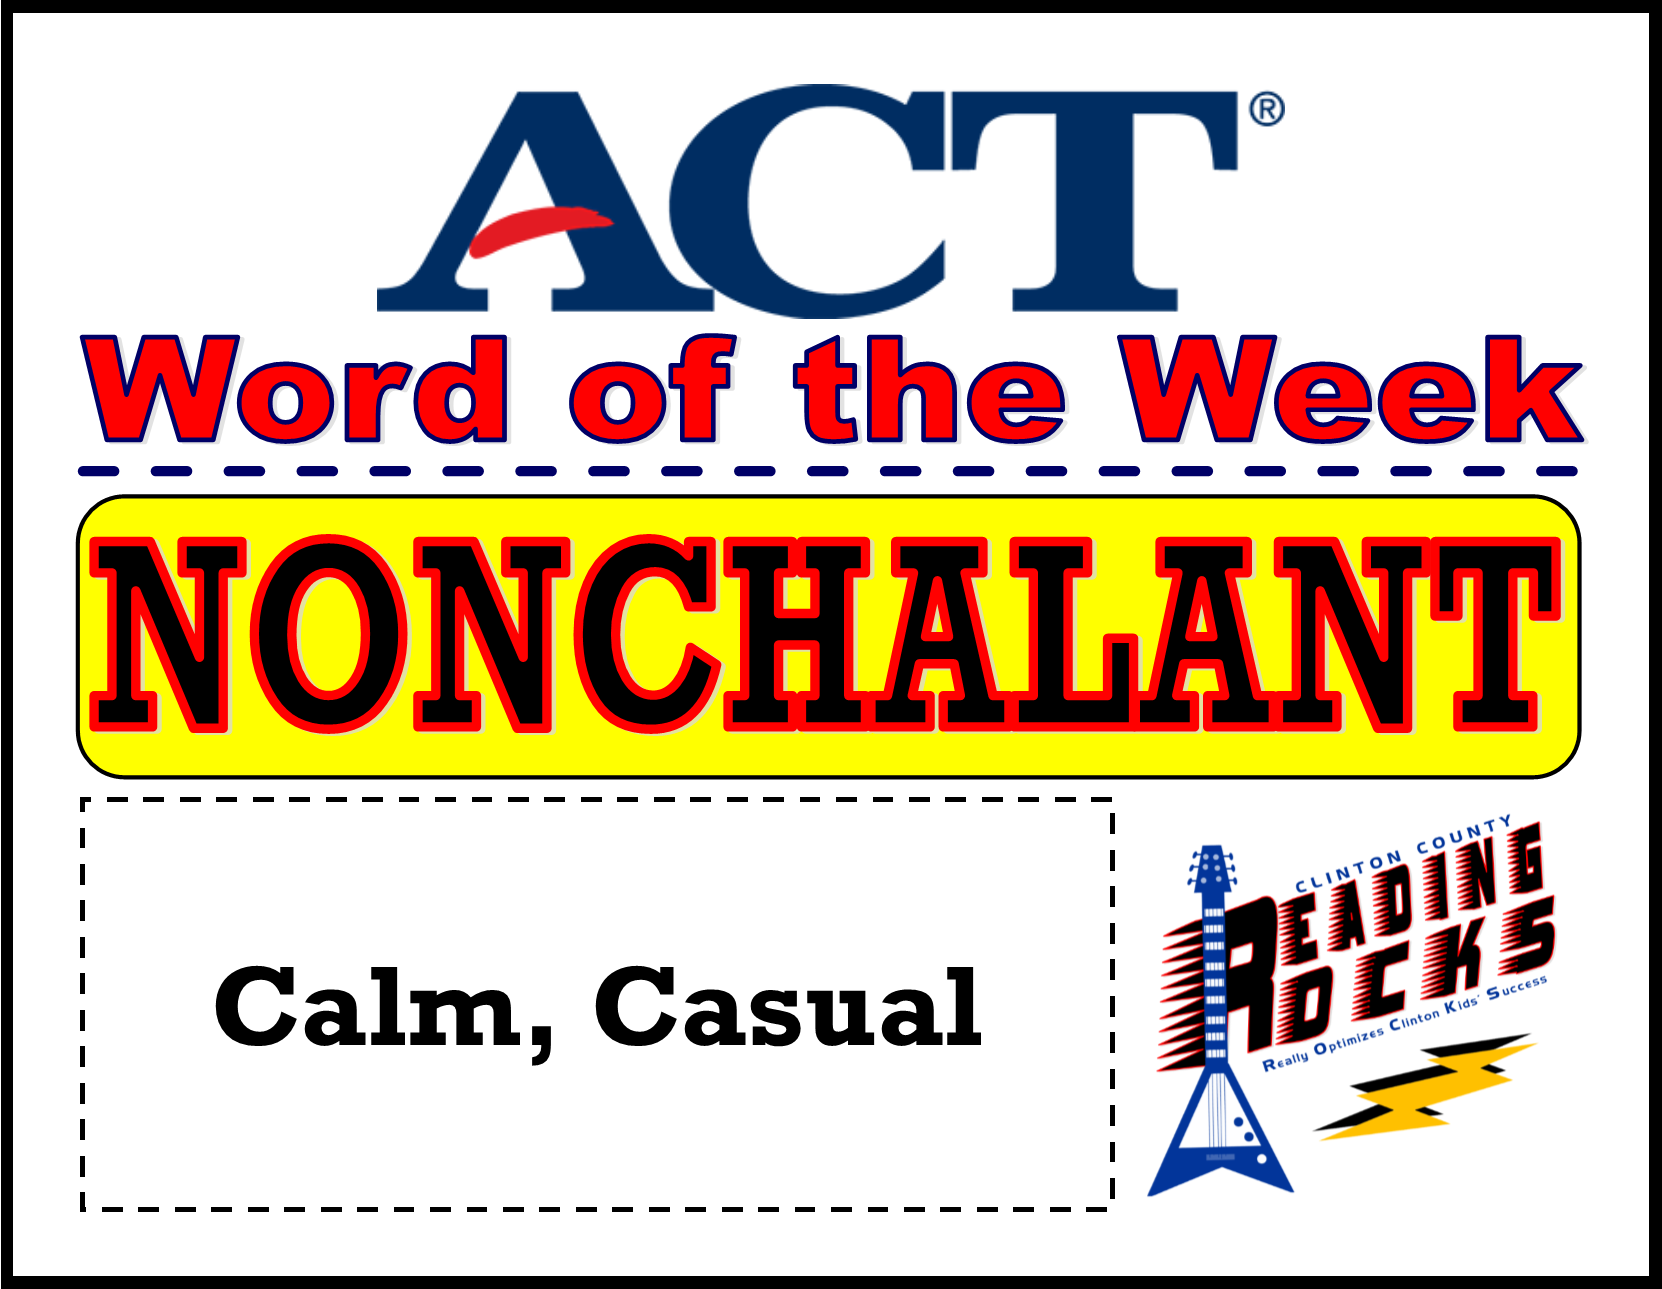 The CCHS Reading ROCKS ACT Word of the Week is - NONCHALANT!